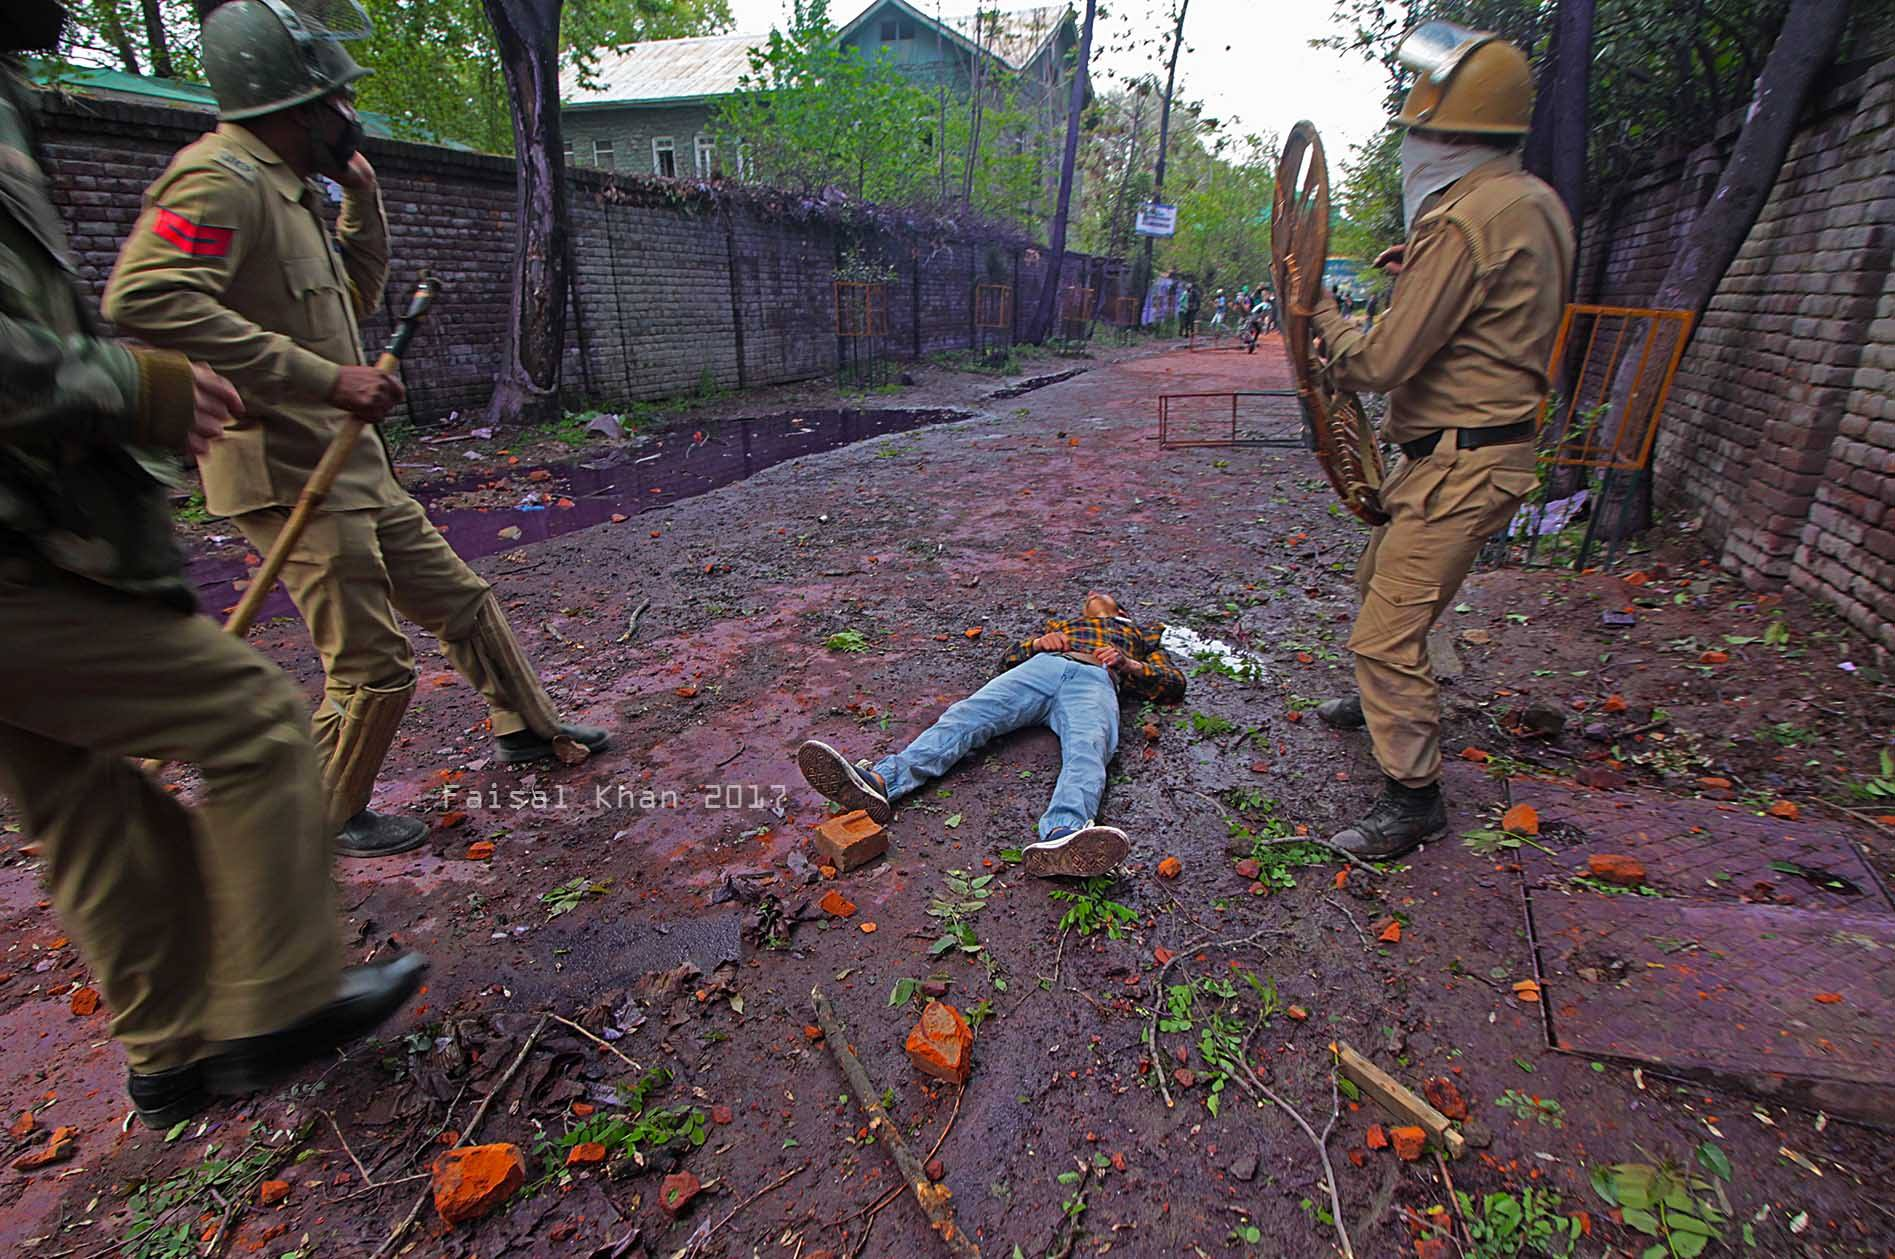 An injured boy lies unconscious during clashes between students and Indian police in Srinagar Kashmir on April 24, 2017.